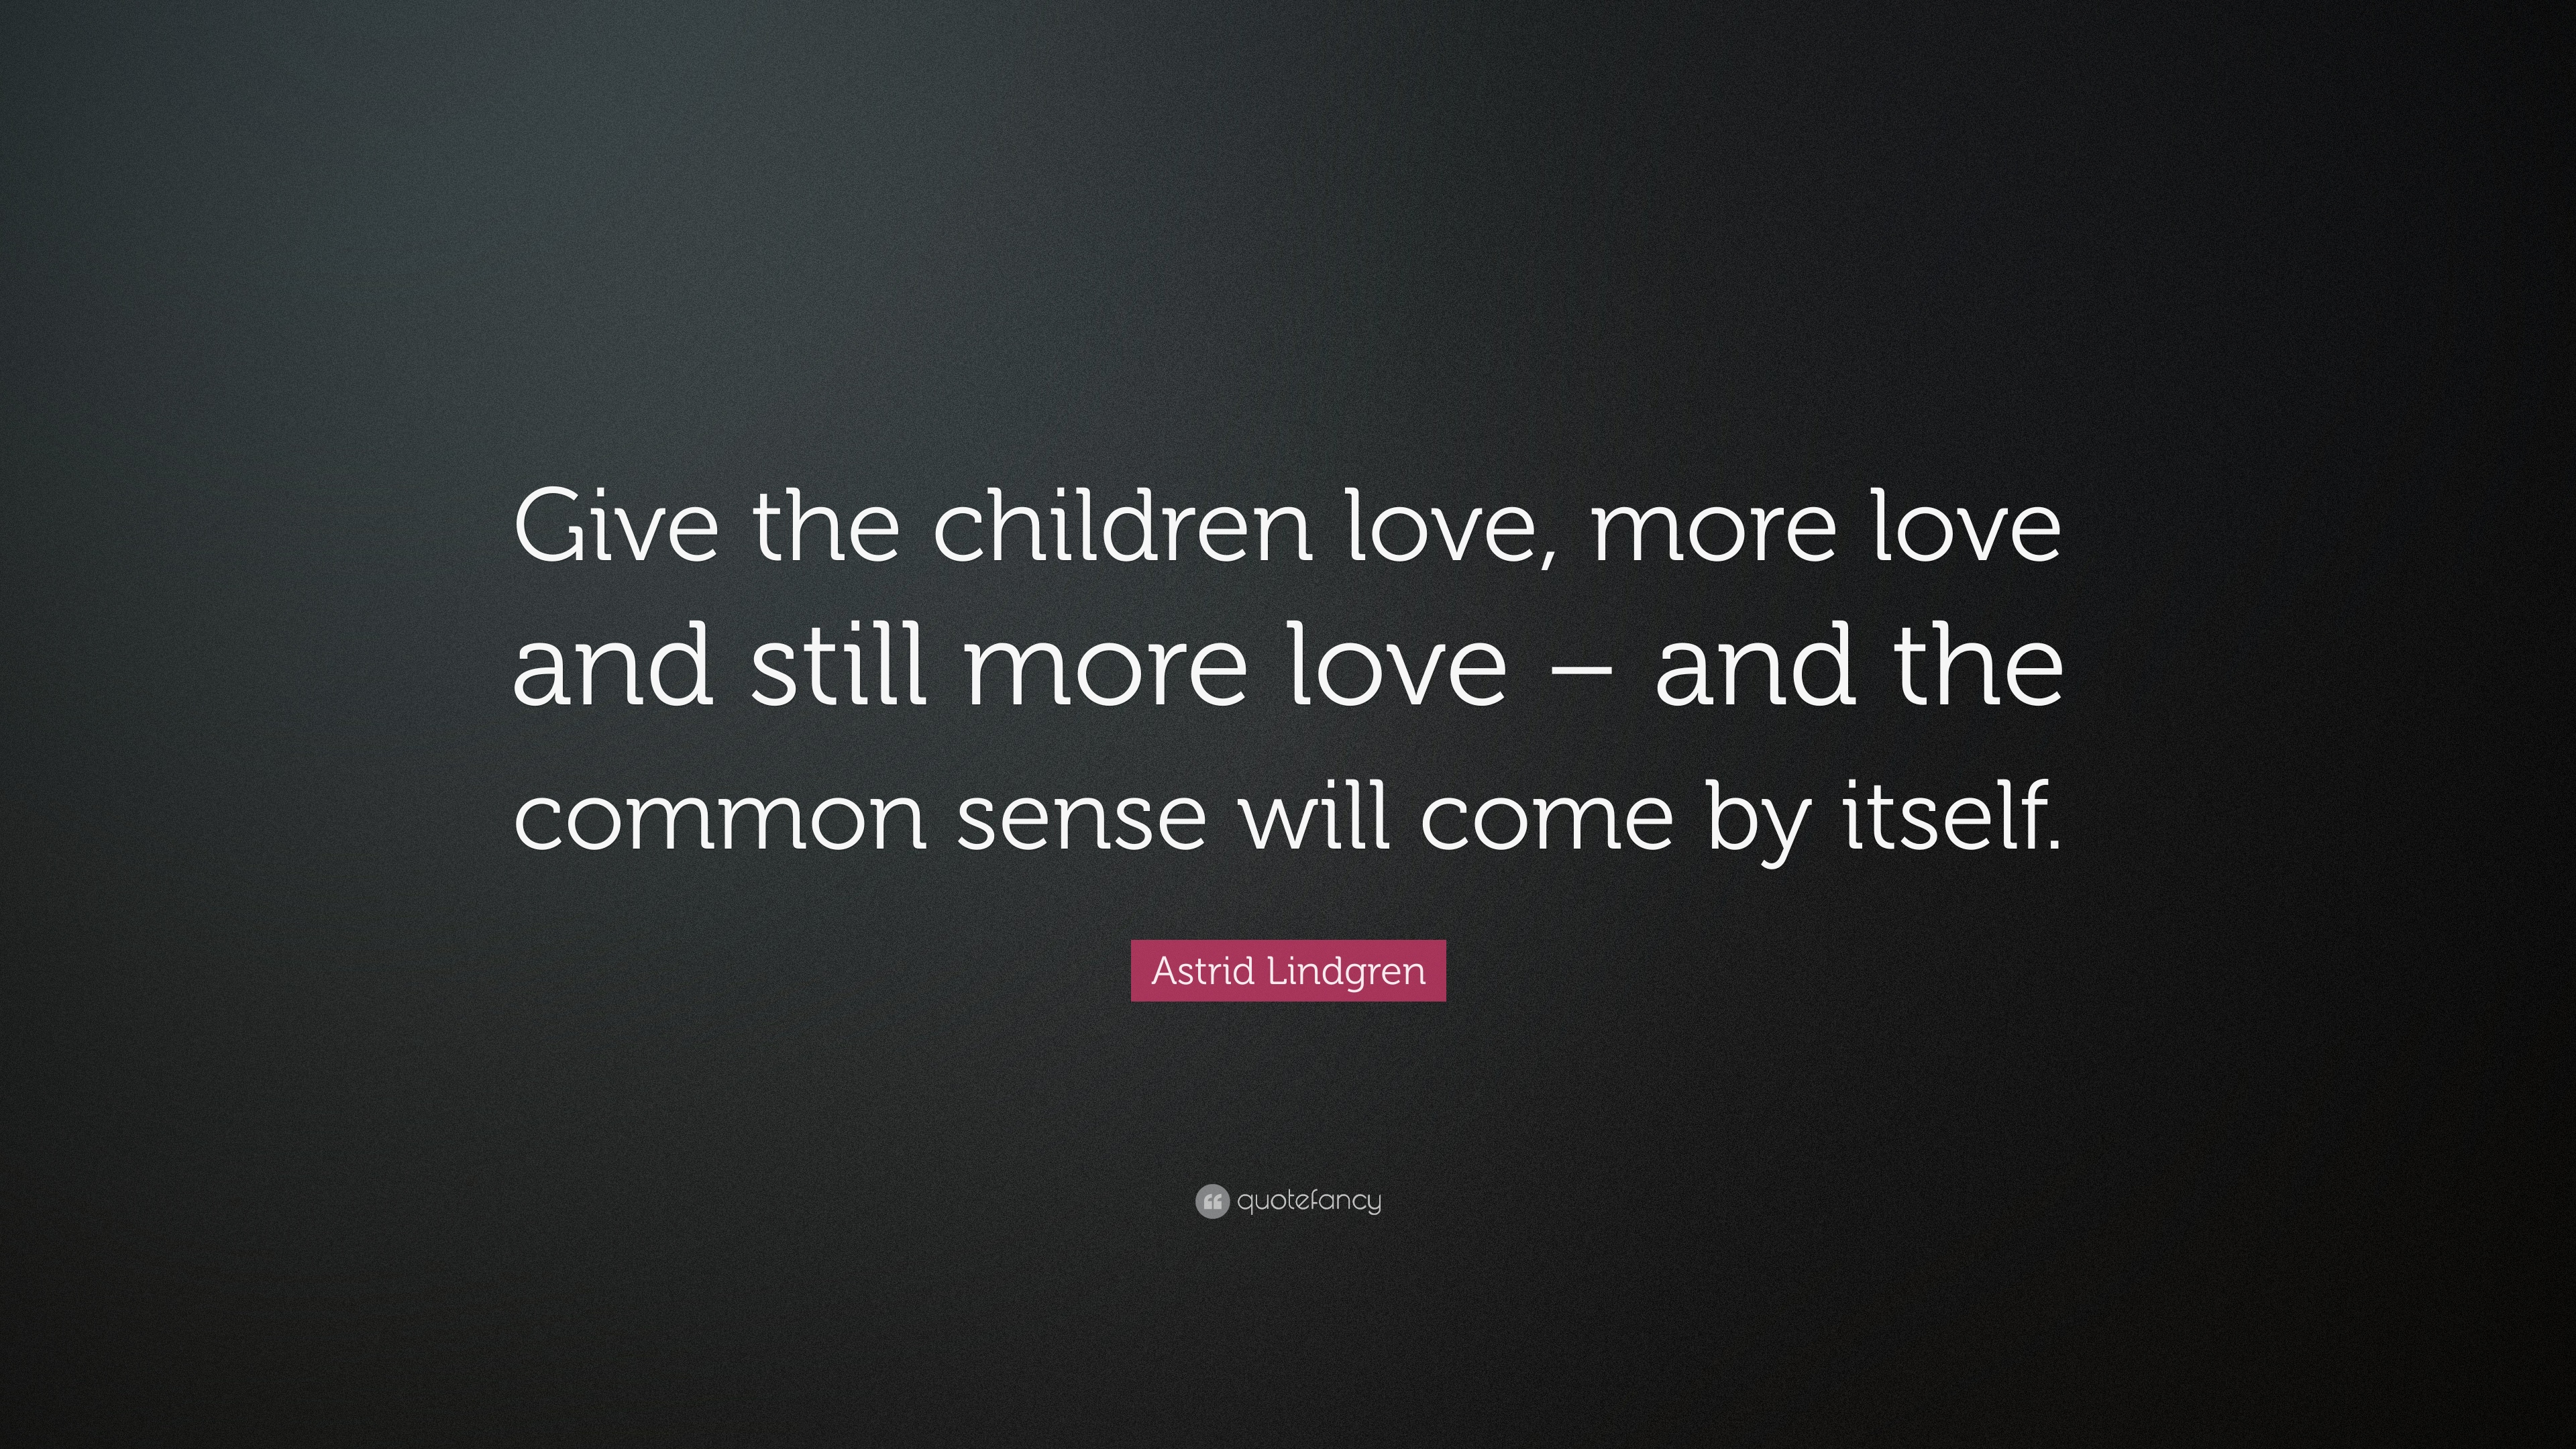 Astrid Lindgren Quote Give The Children Love More Love And Still More Love And The Common Sense Will Come By Itself 9 Wallpapers Quotefancy